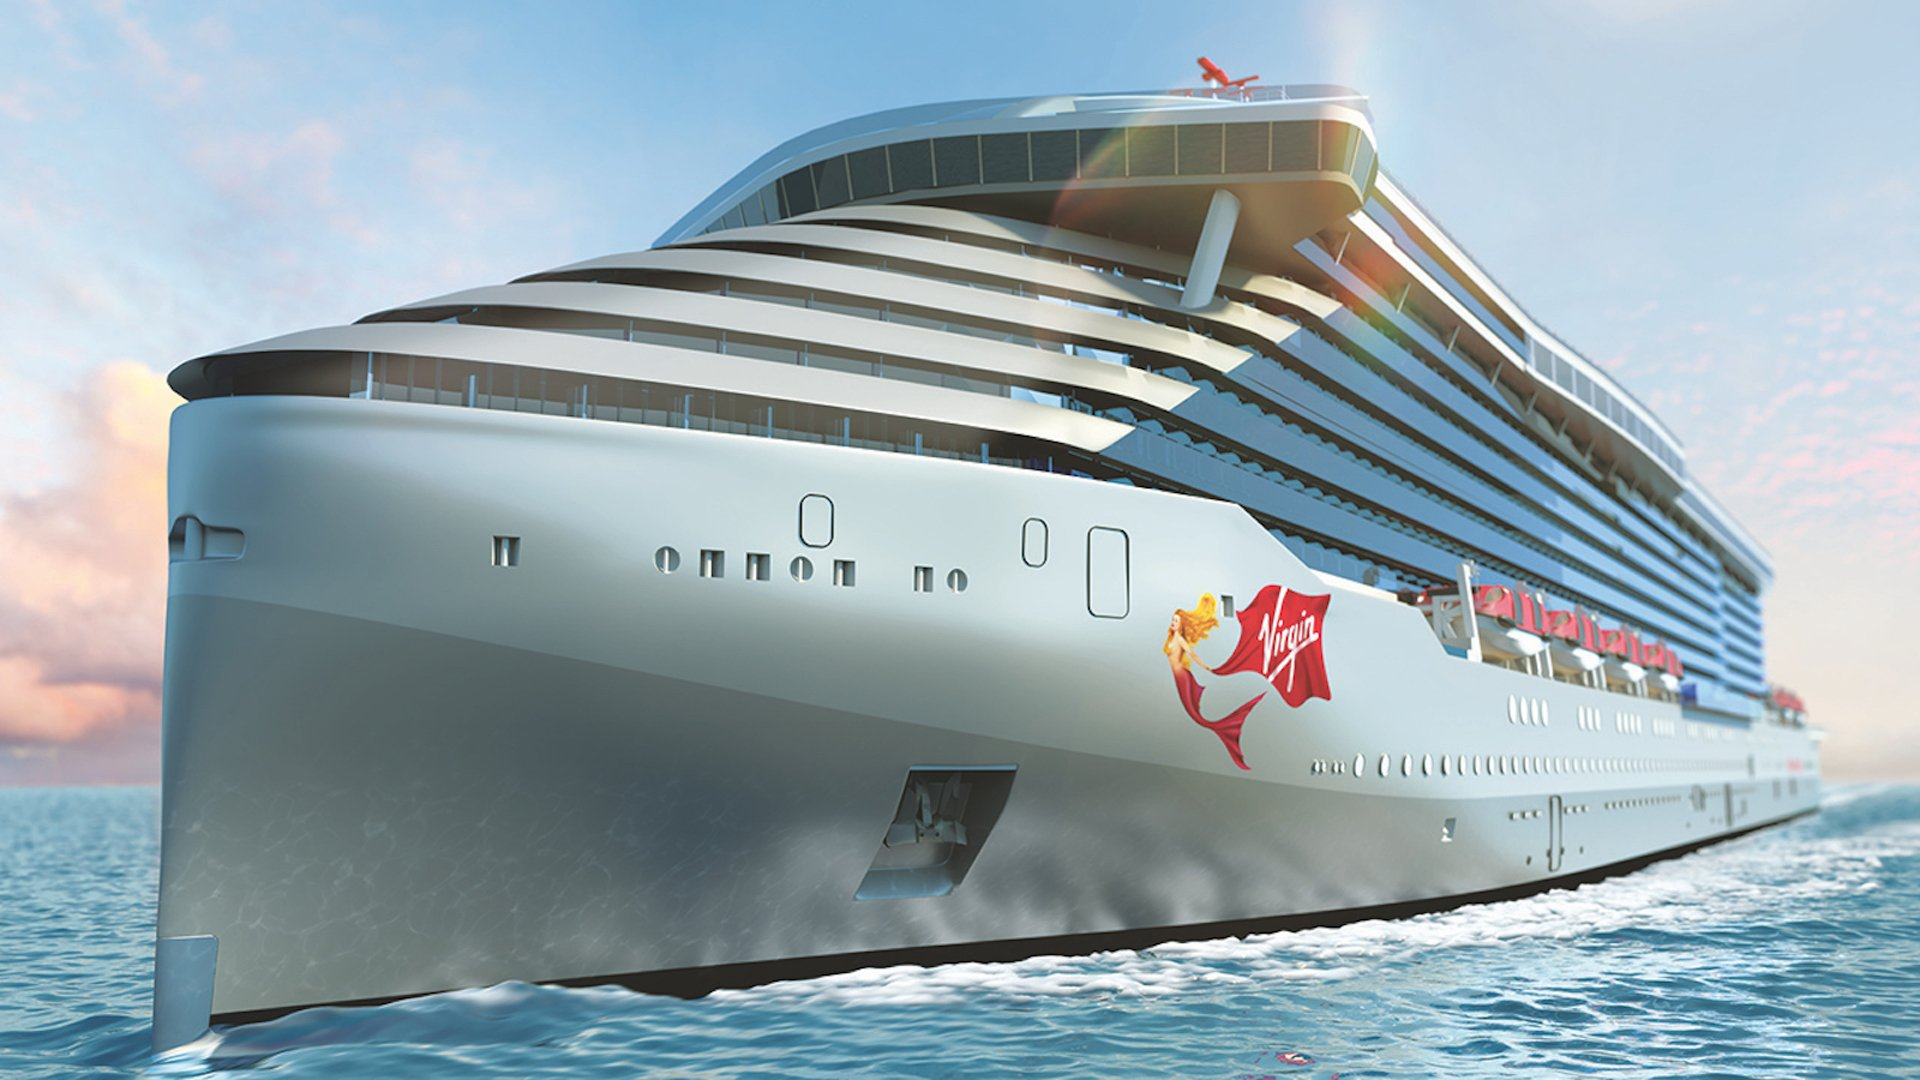 A rendering of Virgin Voyages' first ship, the Scarlet Lady. (Credit: Virgin Voyages)